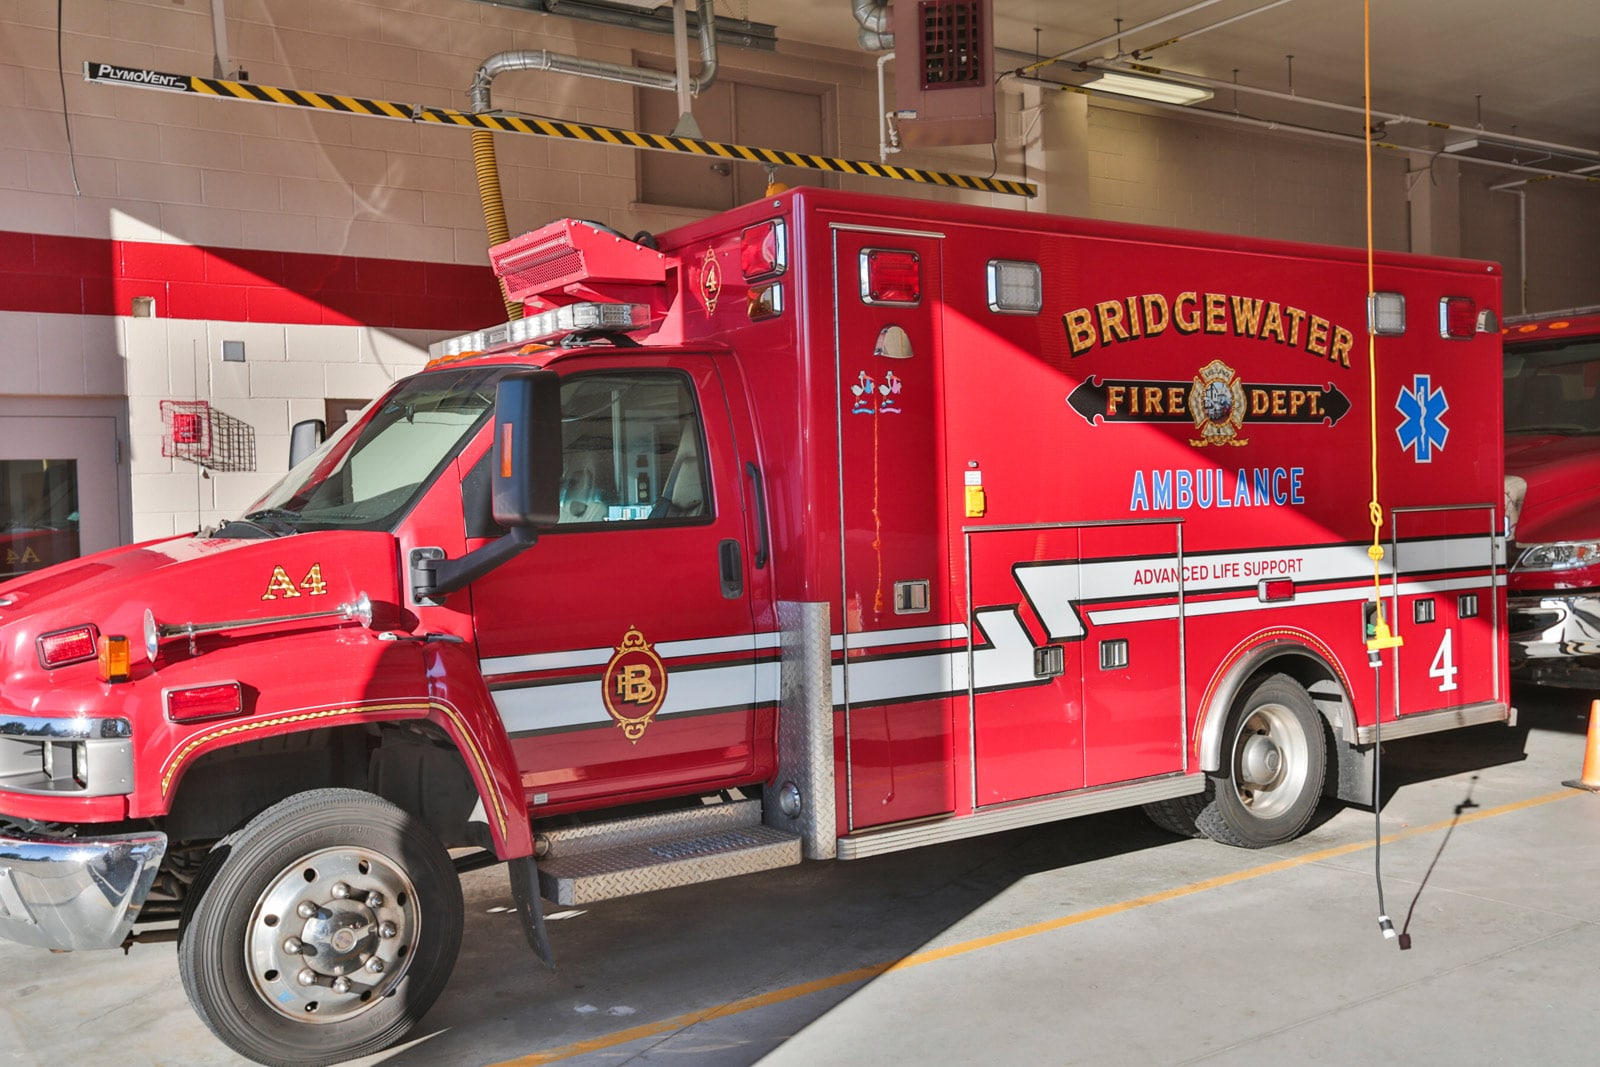 All Chevy chevy c4500 : Apparatus - Bridgewater Fire Department